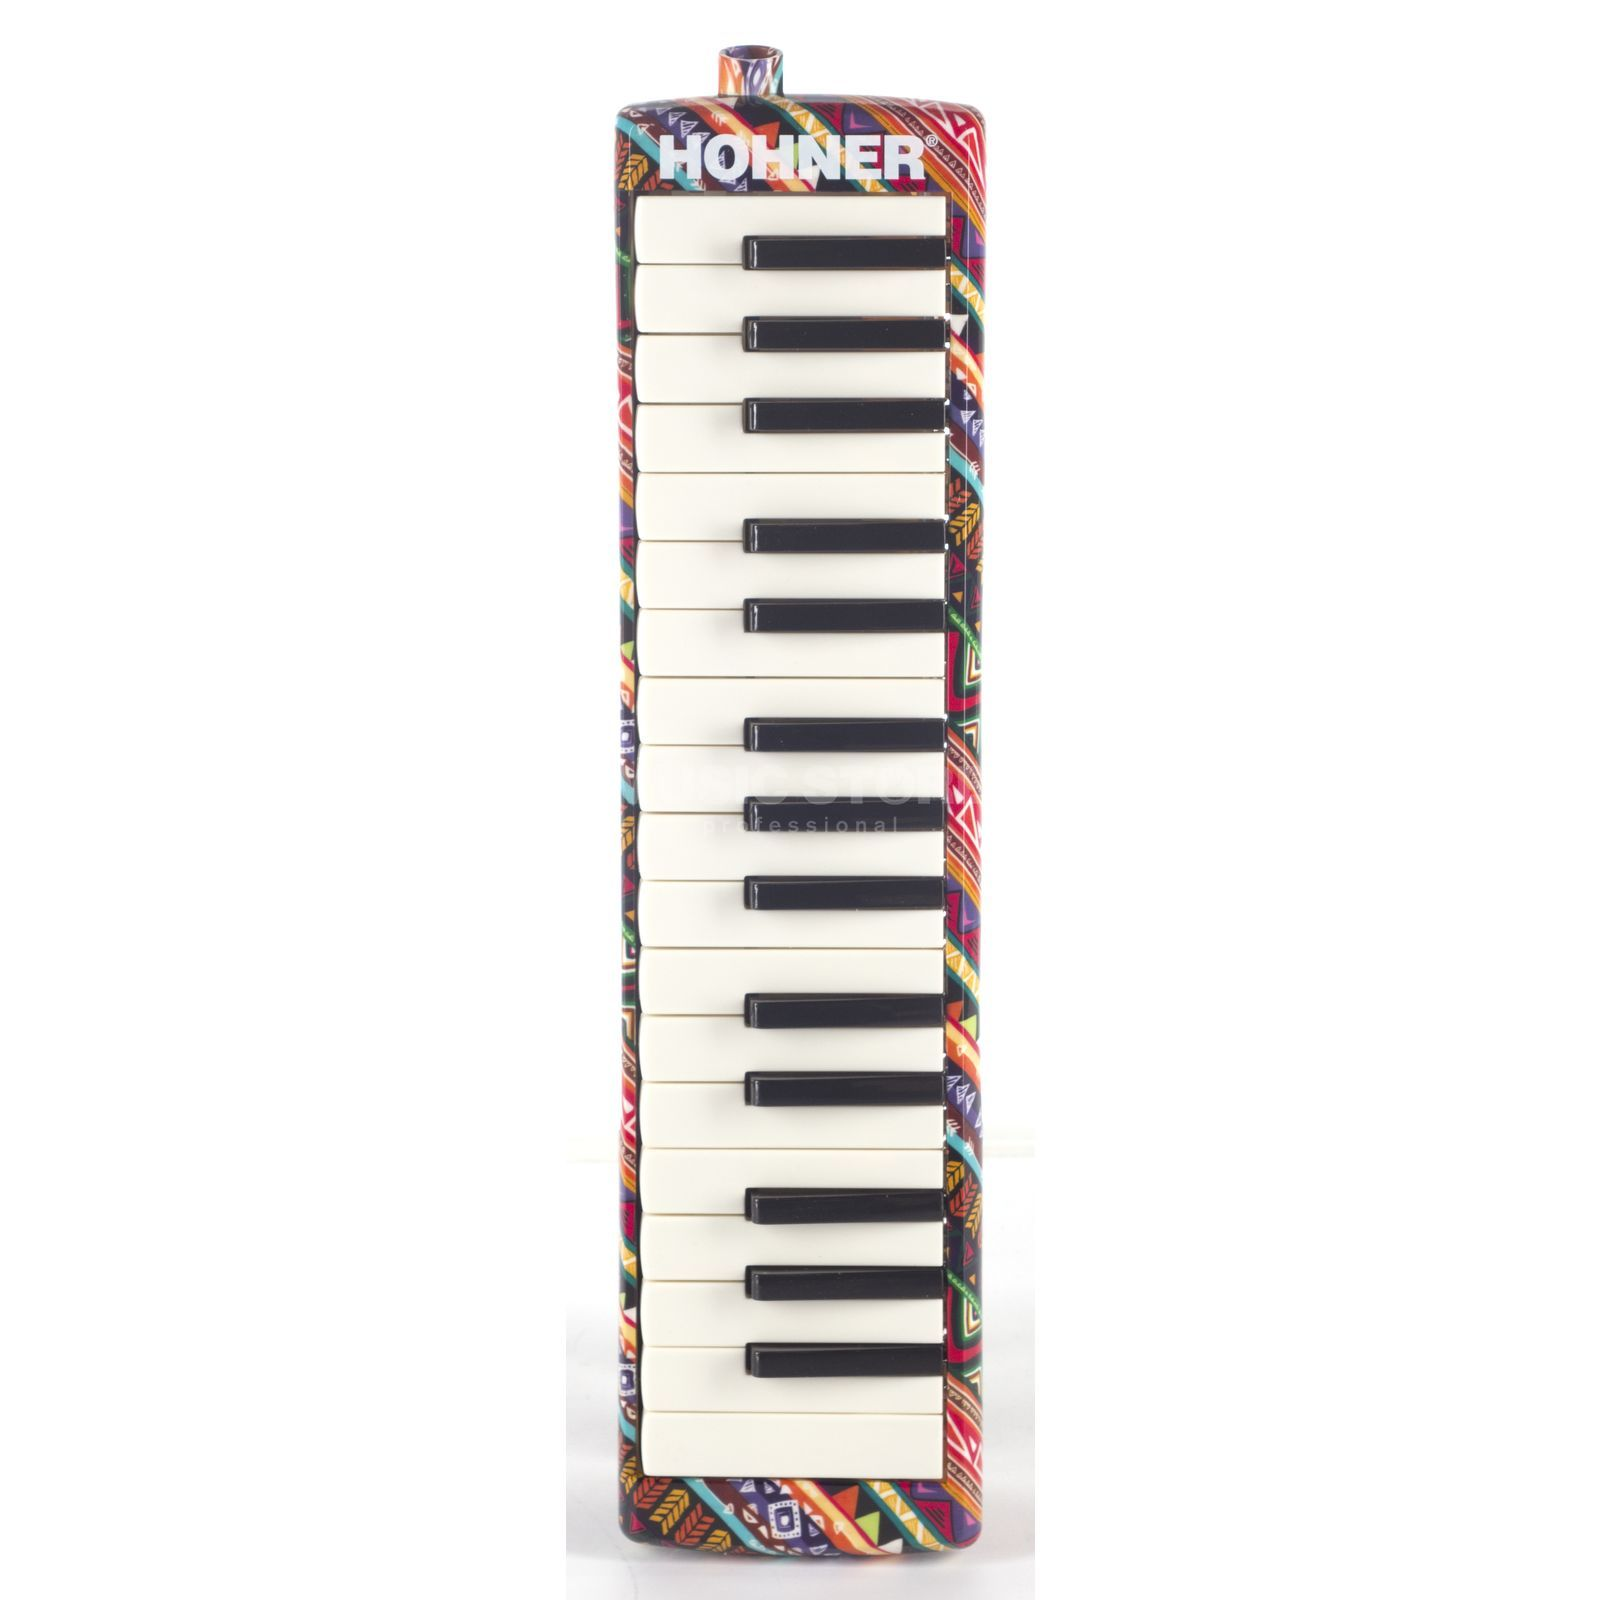 Hohner Melodica Airboard 32 inkl. Softcase Produktbild